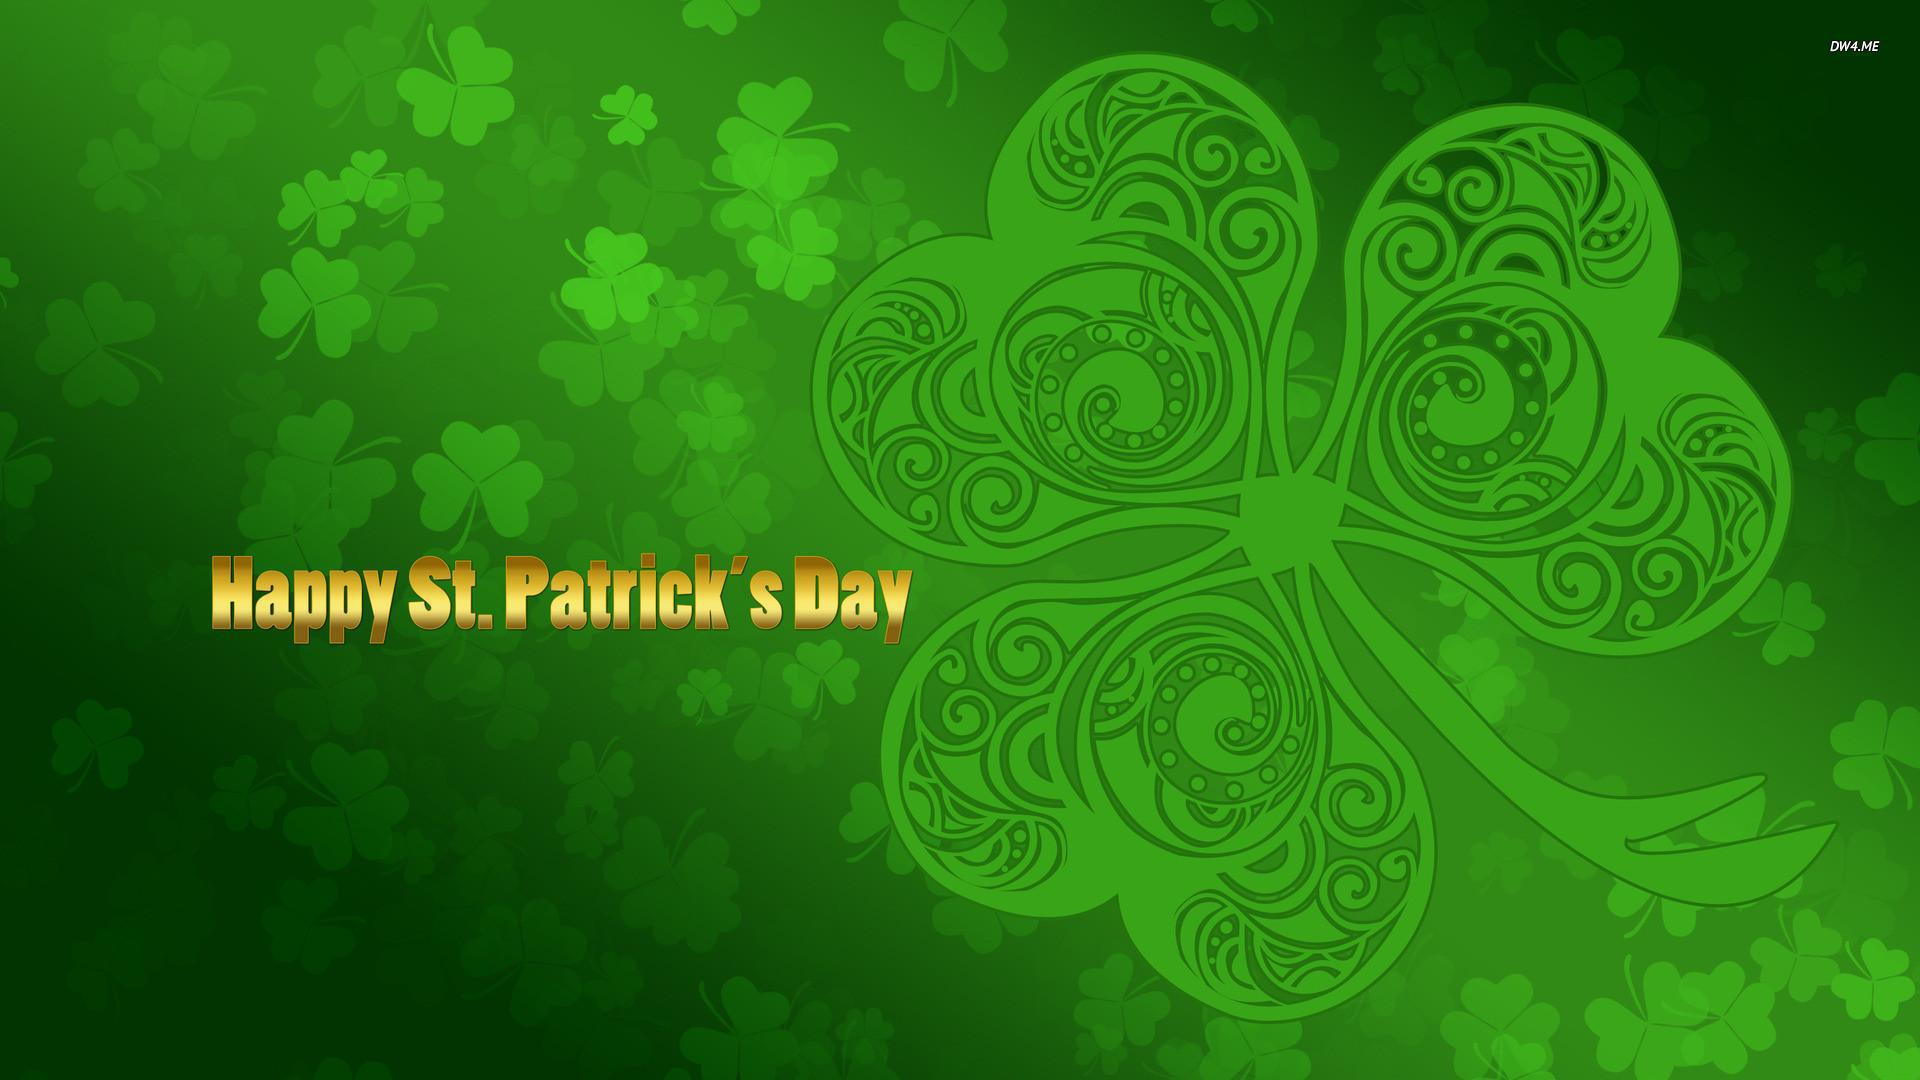 Pictures Of Saint Patrick's Day